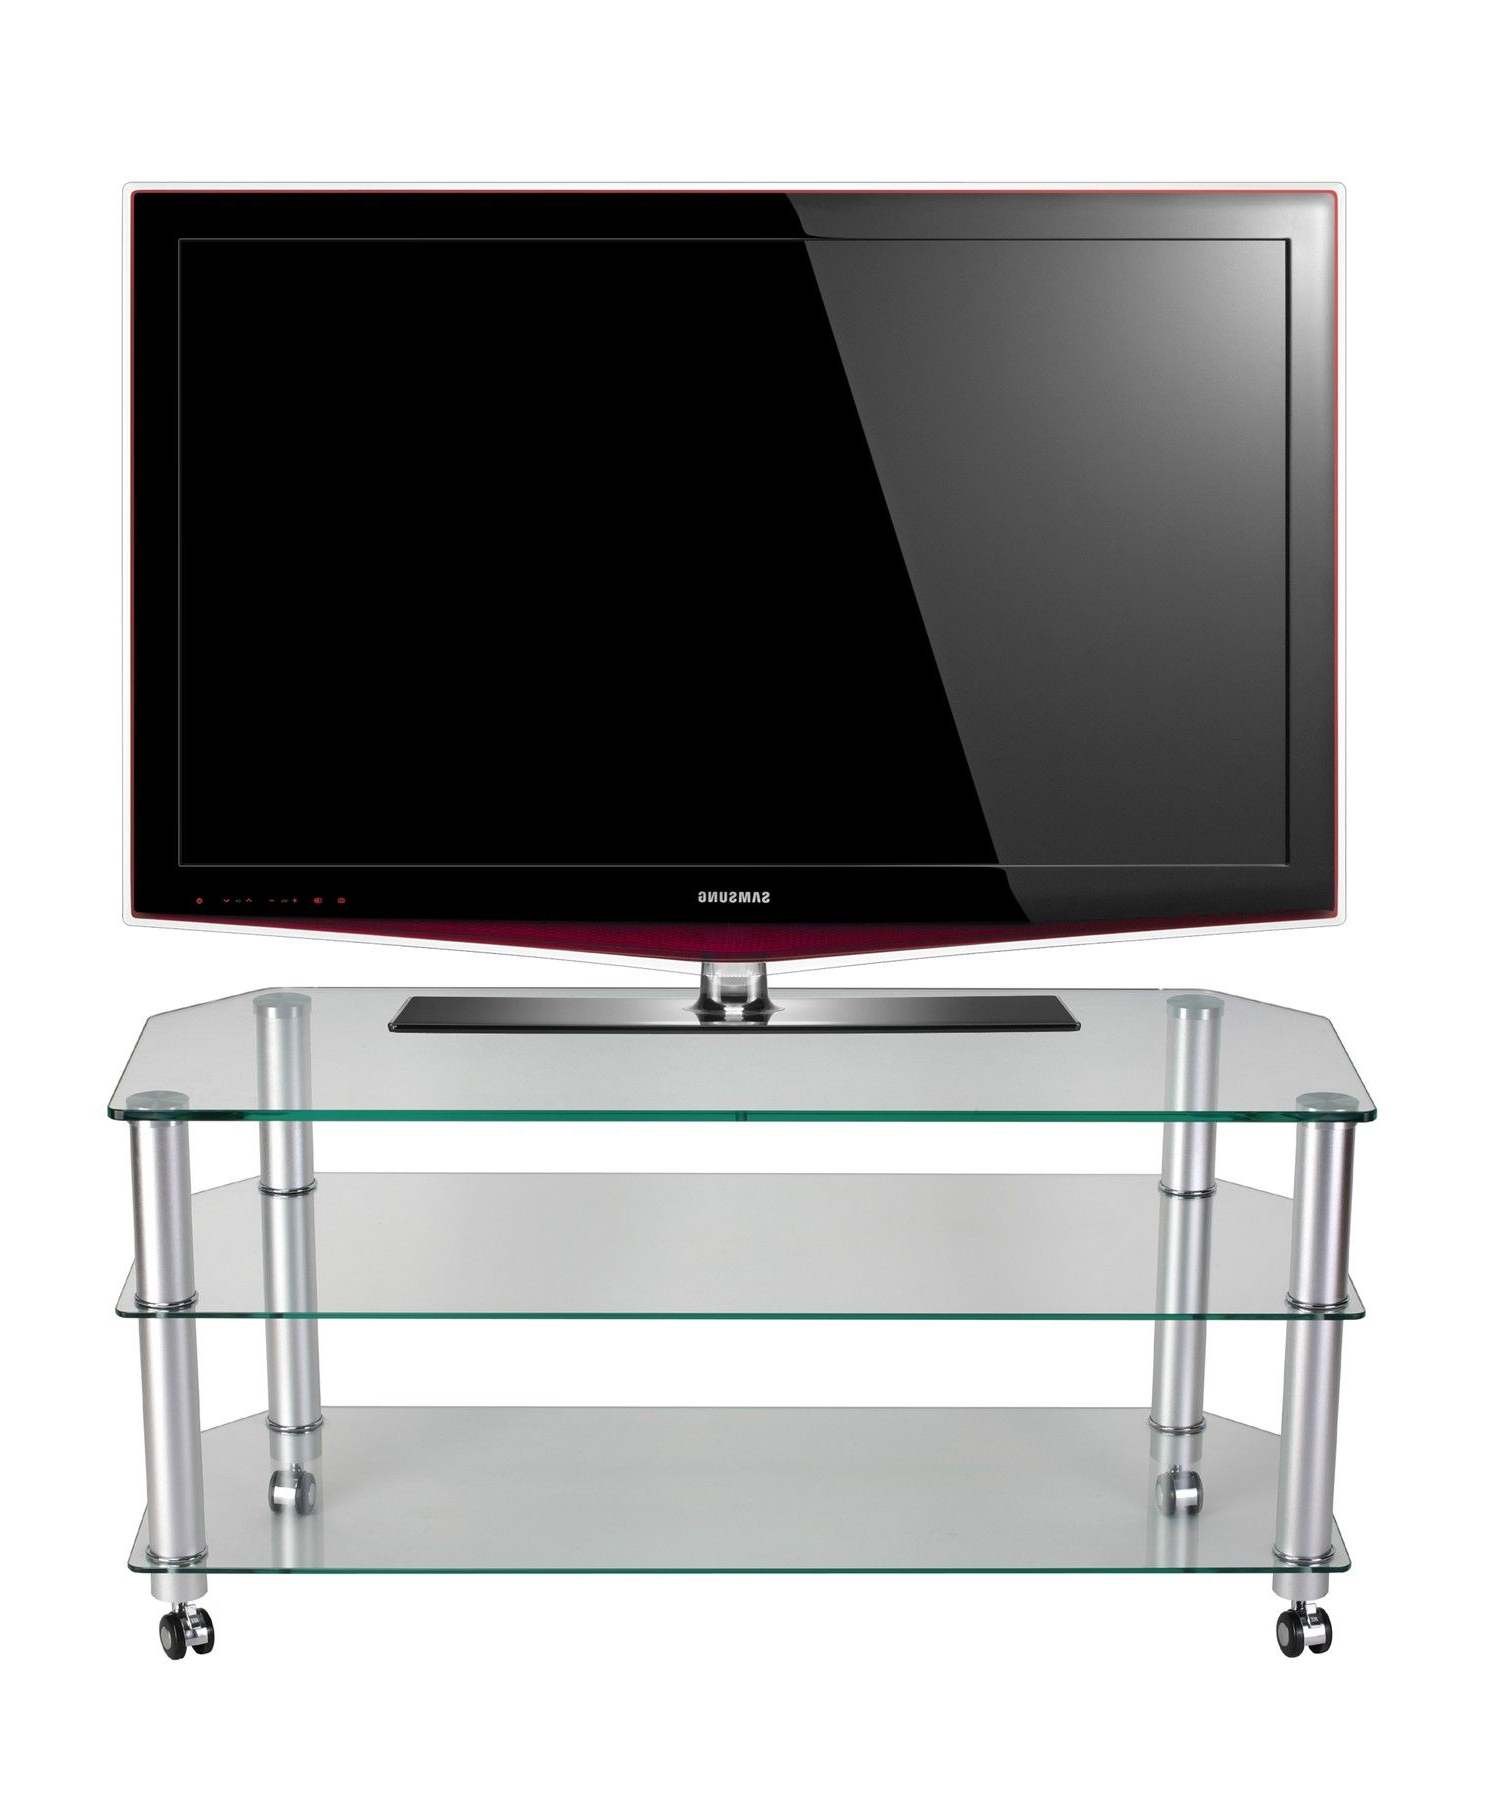 "Stil Tv Stands For Most Recently Released Clear Glass Tv Stand / Tv Trolleystil Stand For Up To 50"" Tvs (View 14 of 20)"